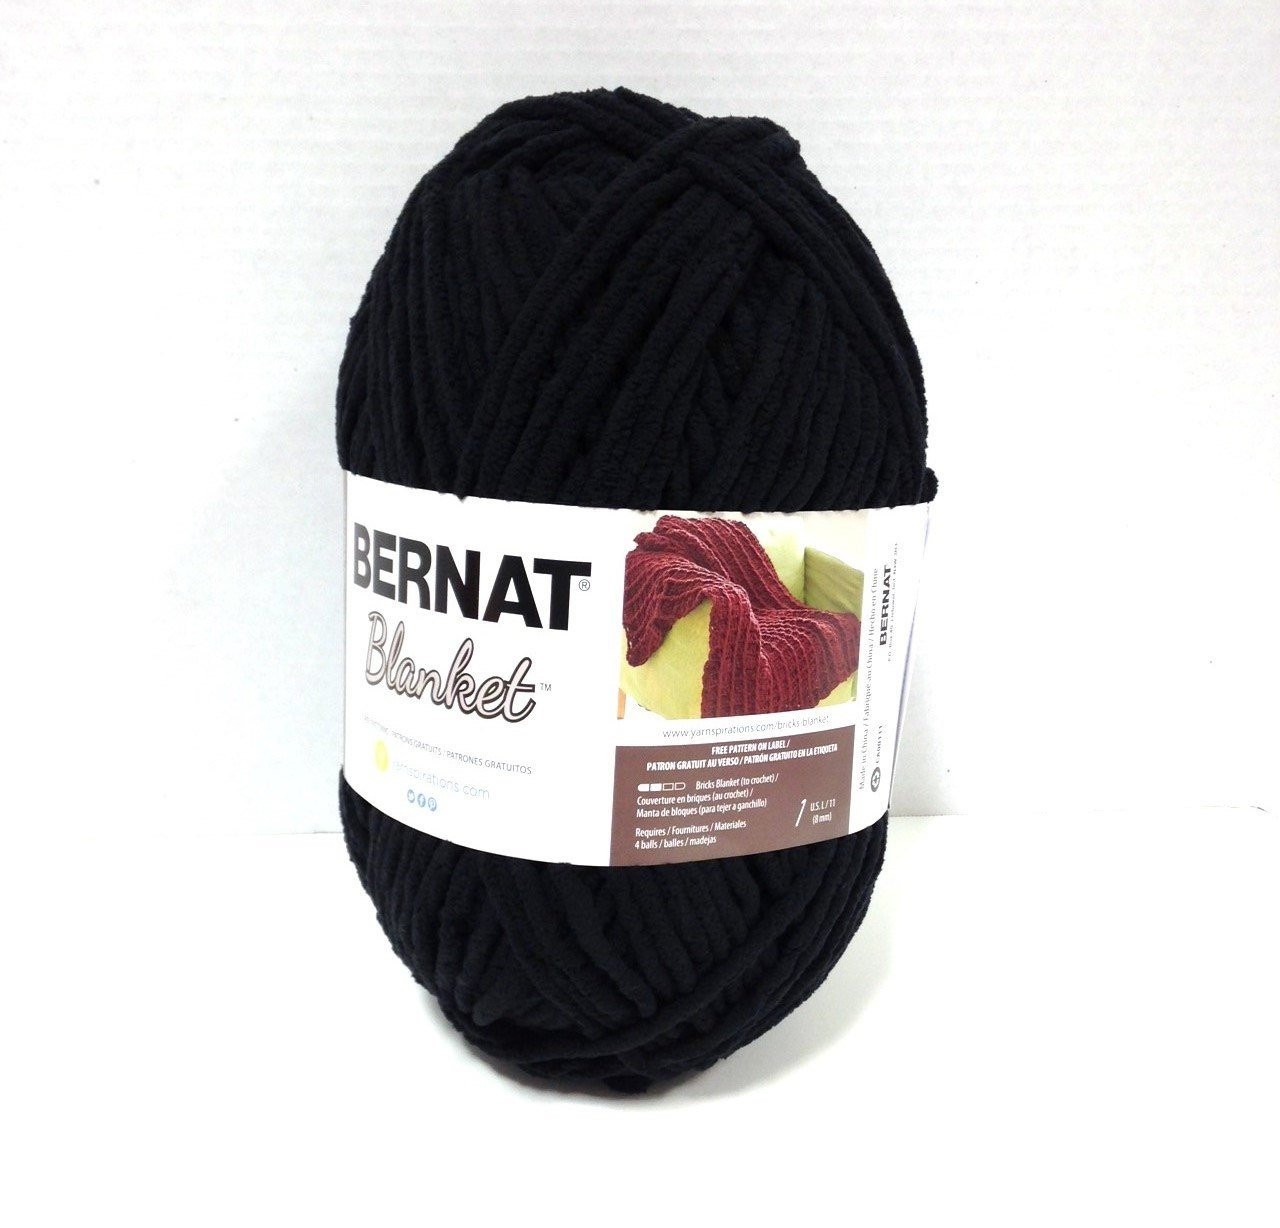 Bernat Blanket Yarn Inspirational Bernat Blanket Yarn In Coal Black 300 Gram Ball New Home Of Beautiful 42 Models Bernat Blanket Yarn